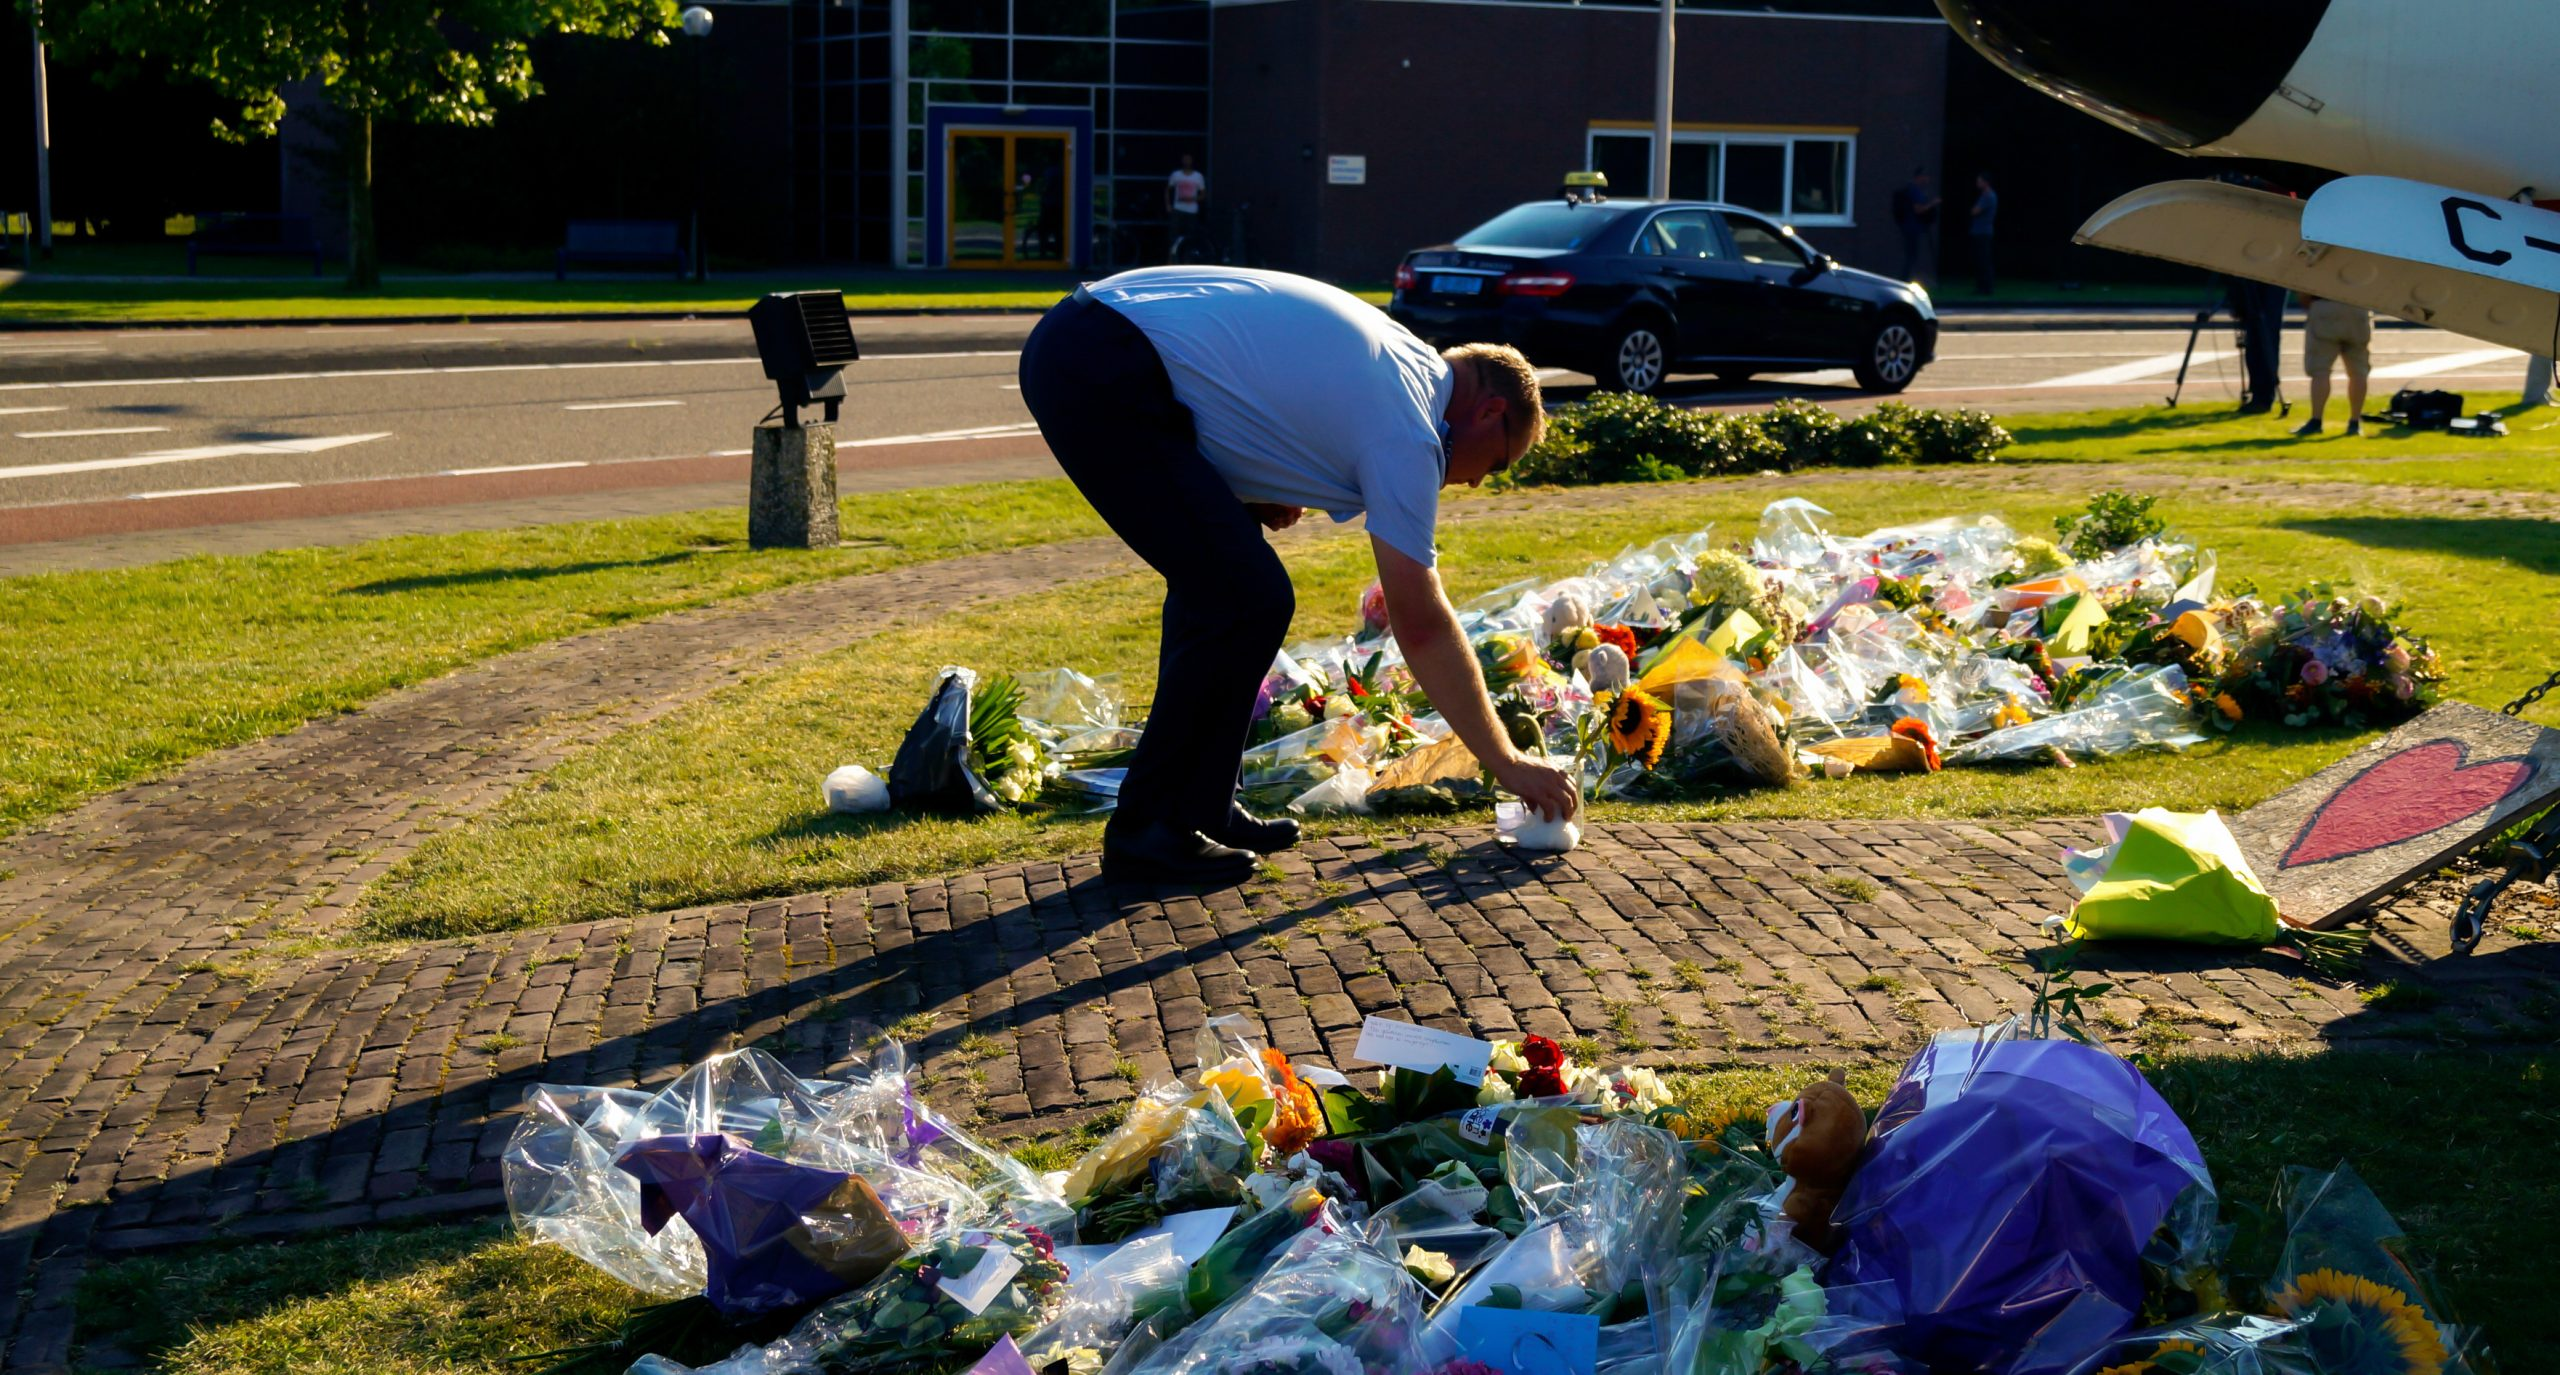 July 23, 2014: Eindhoven, Military Airport. Police officer is leaving flowers on behalf of the relatives of the victims.